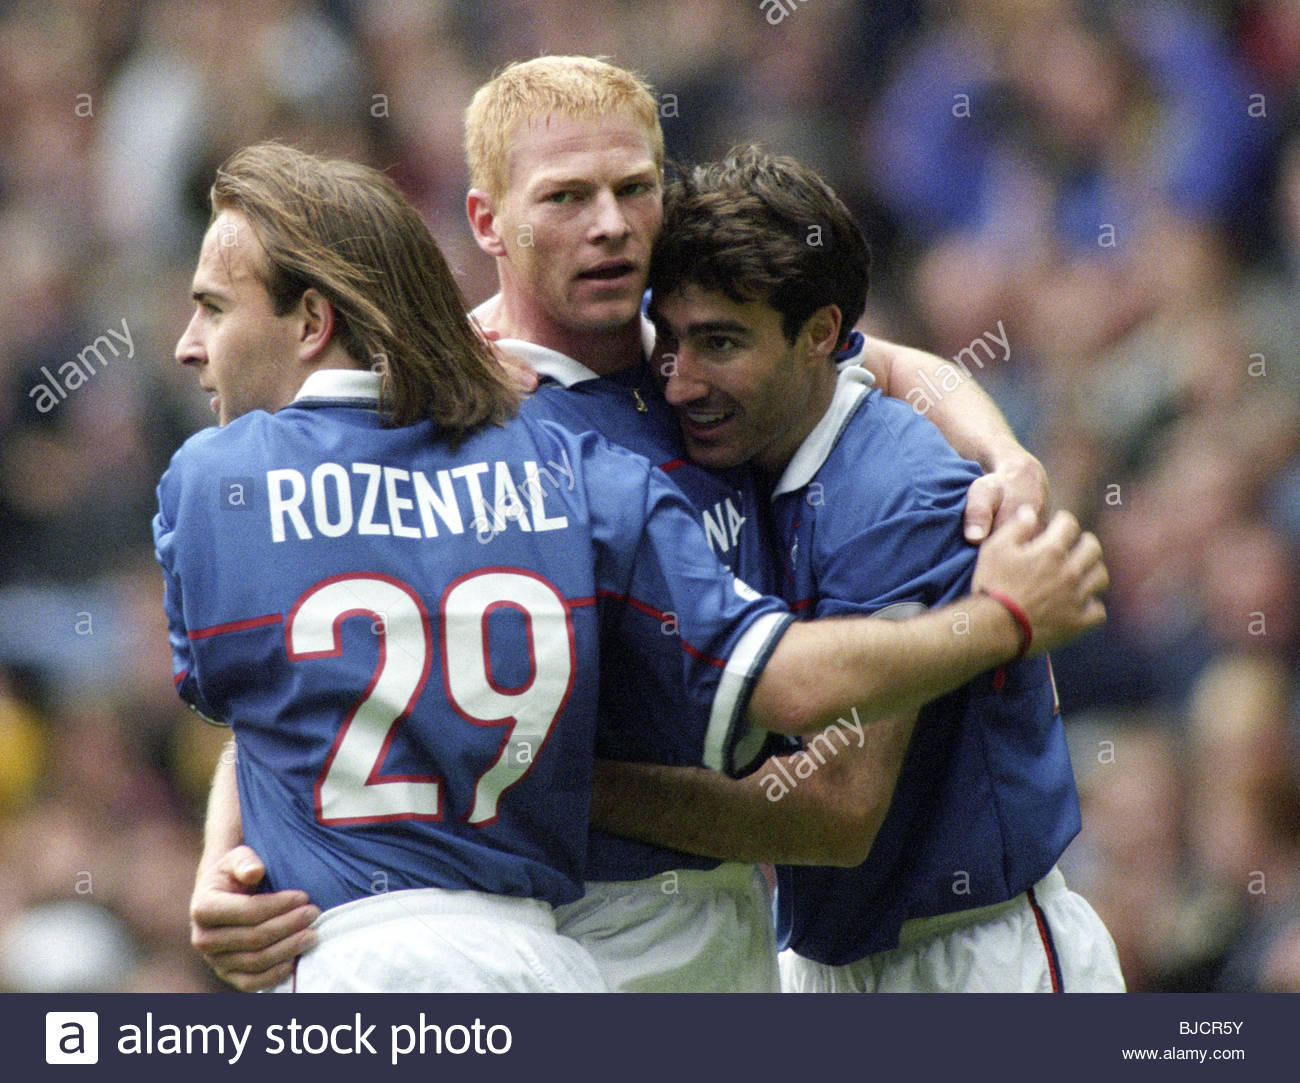 04/10/98 SPL RANGERS v DUNDEE (1-0) IBROX - GLASGOW Jorg Albertz (centre) celebrates his goal with Rangers team - Stock Image